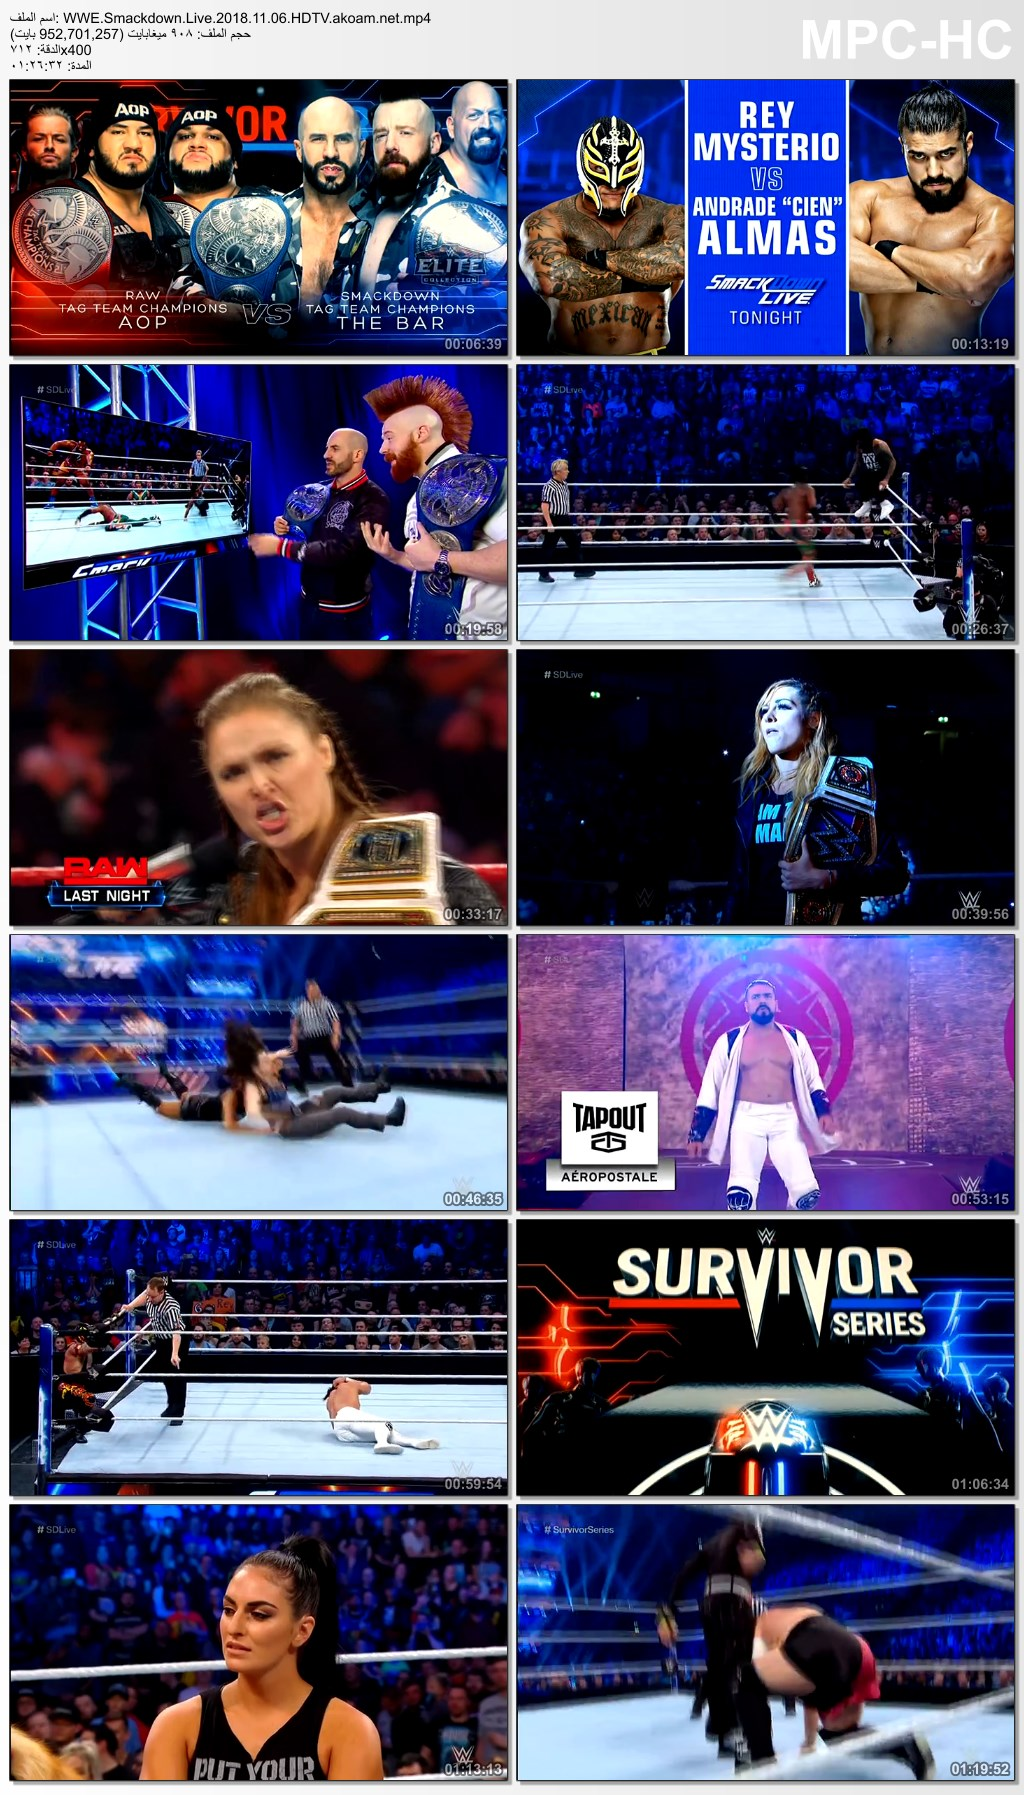 WWE Smackdown Live 2018,WWE,Smackdown